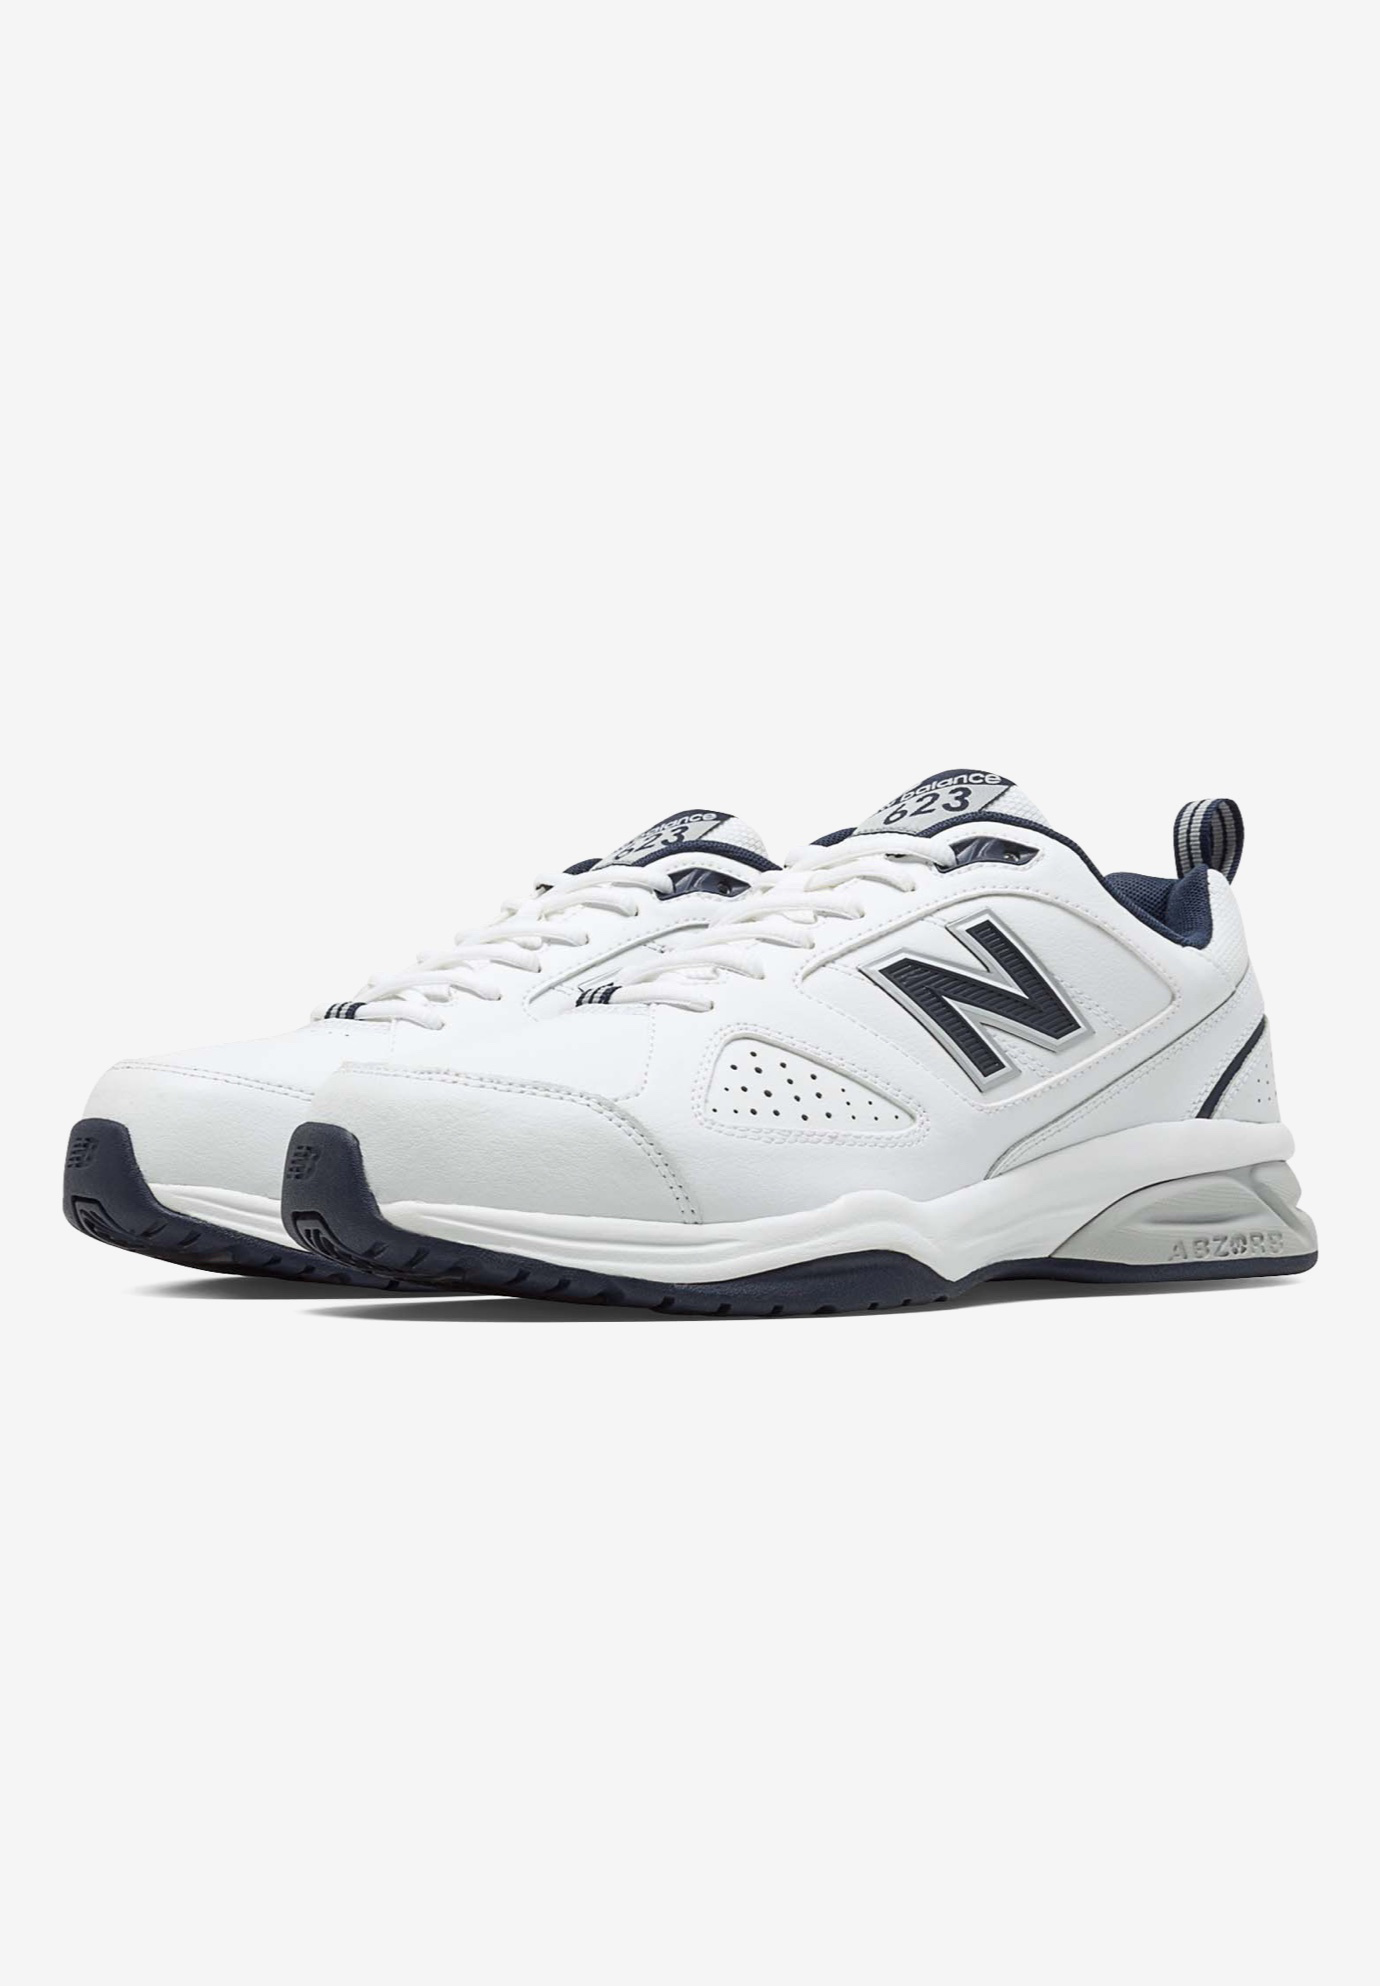 New Balance® 624V2 Sneakers,